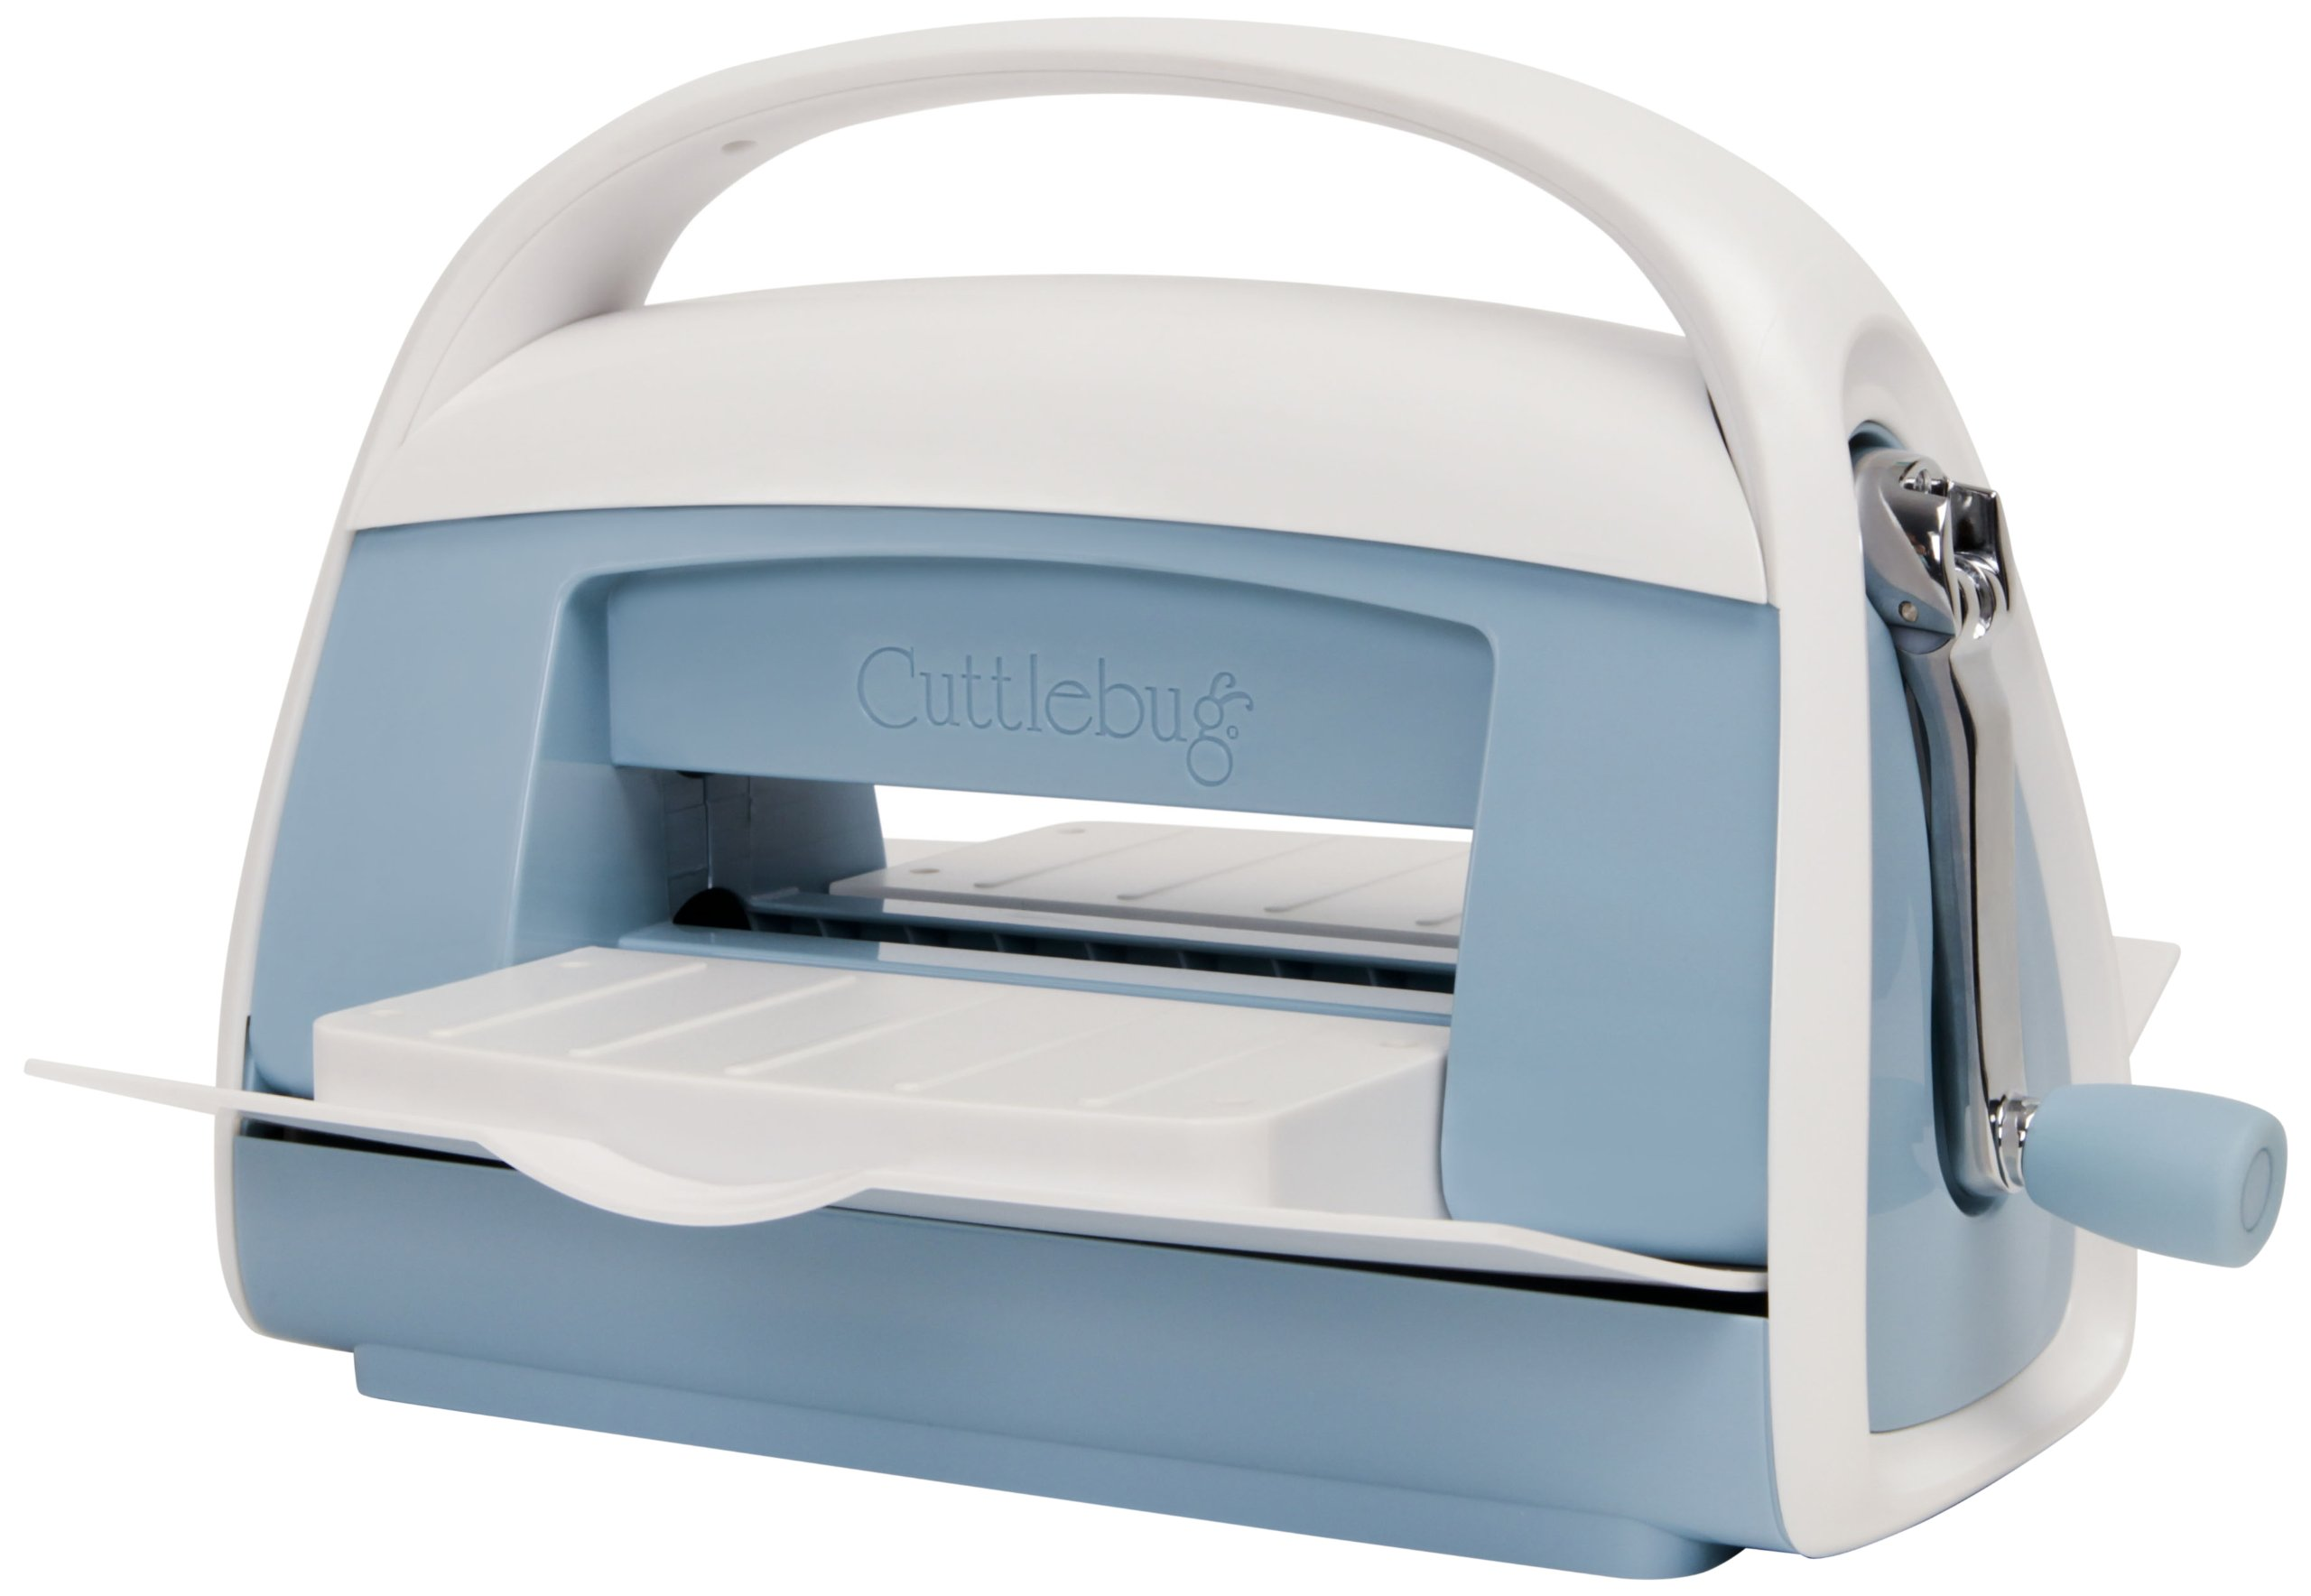 Cricut Cuttlebug Machine - Blue by supemale (Image #1)